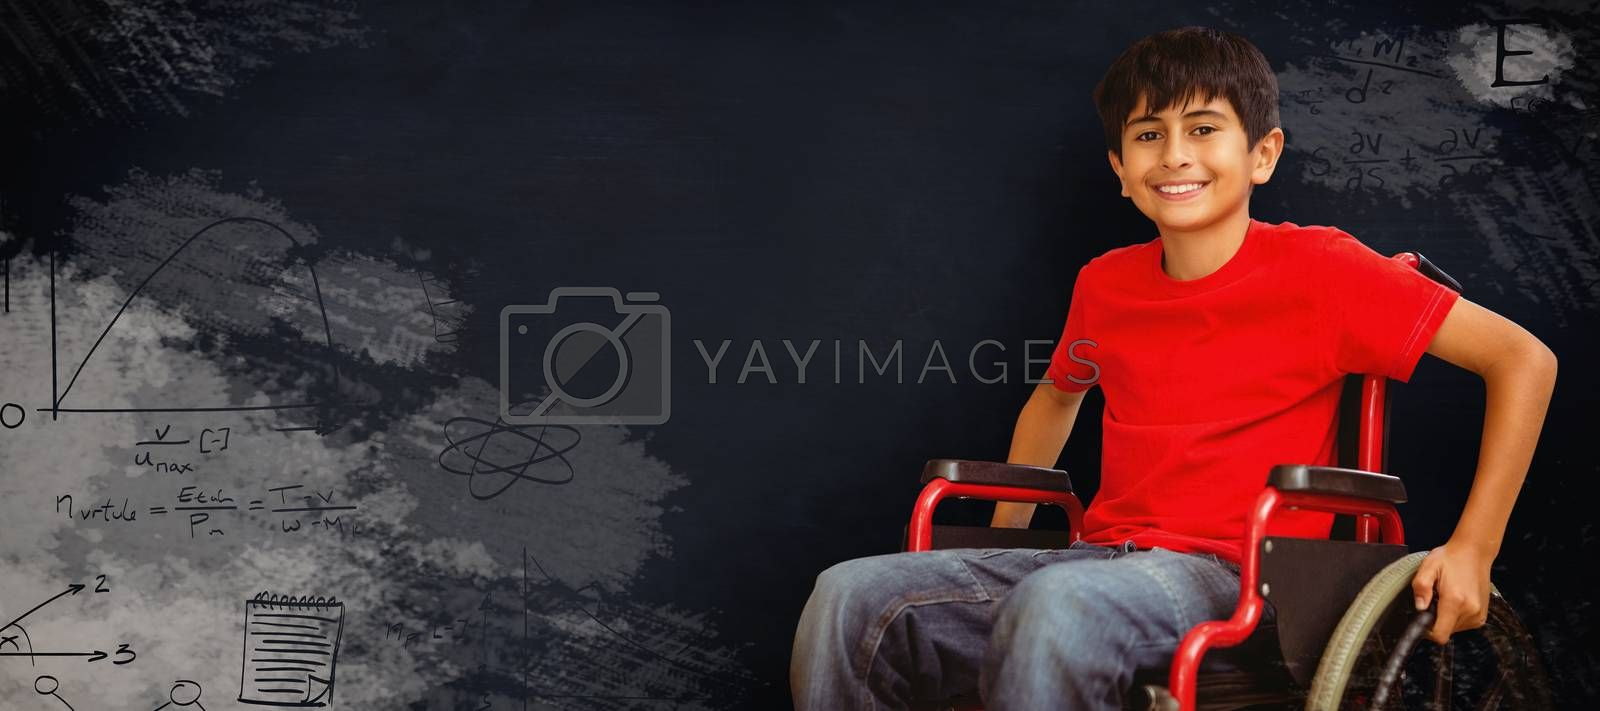 Composite image of portrait of boy sitting in wheelchair by Wavebreakmedia